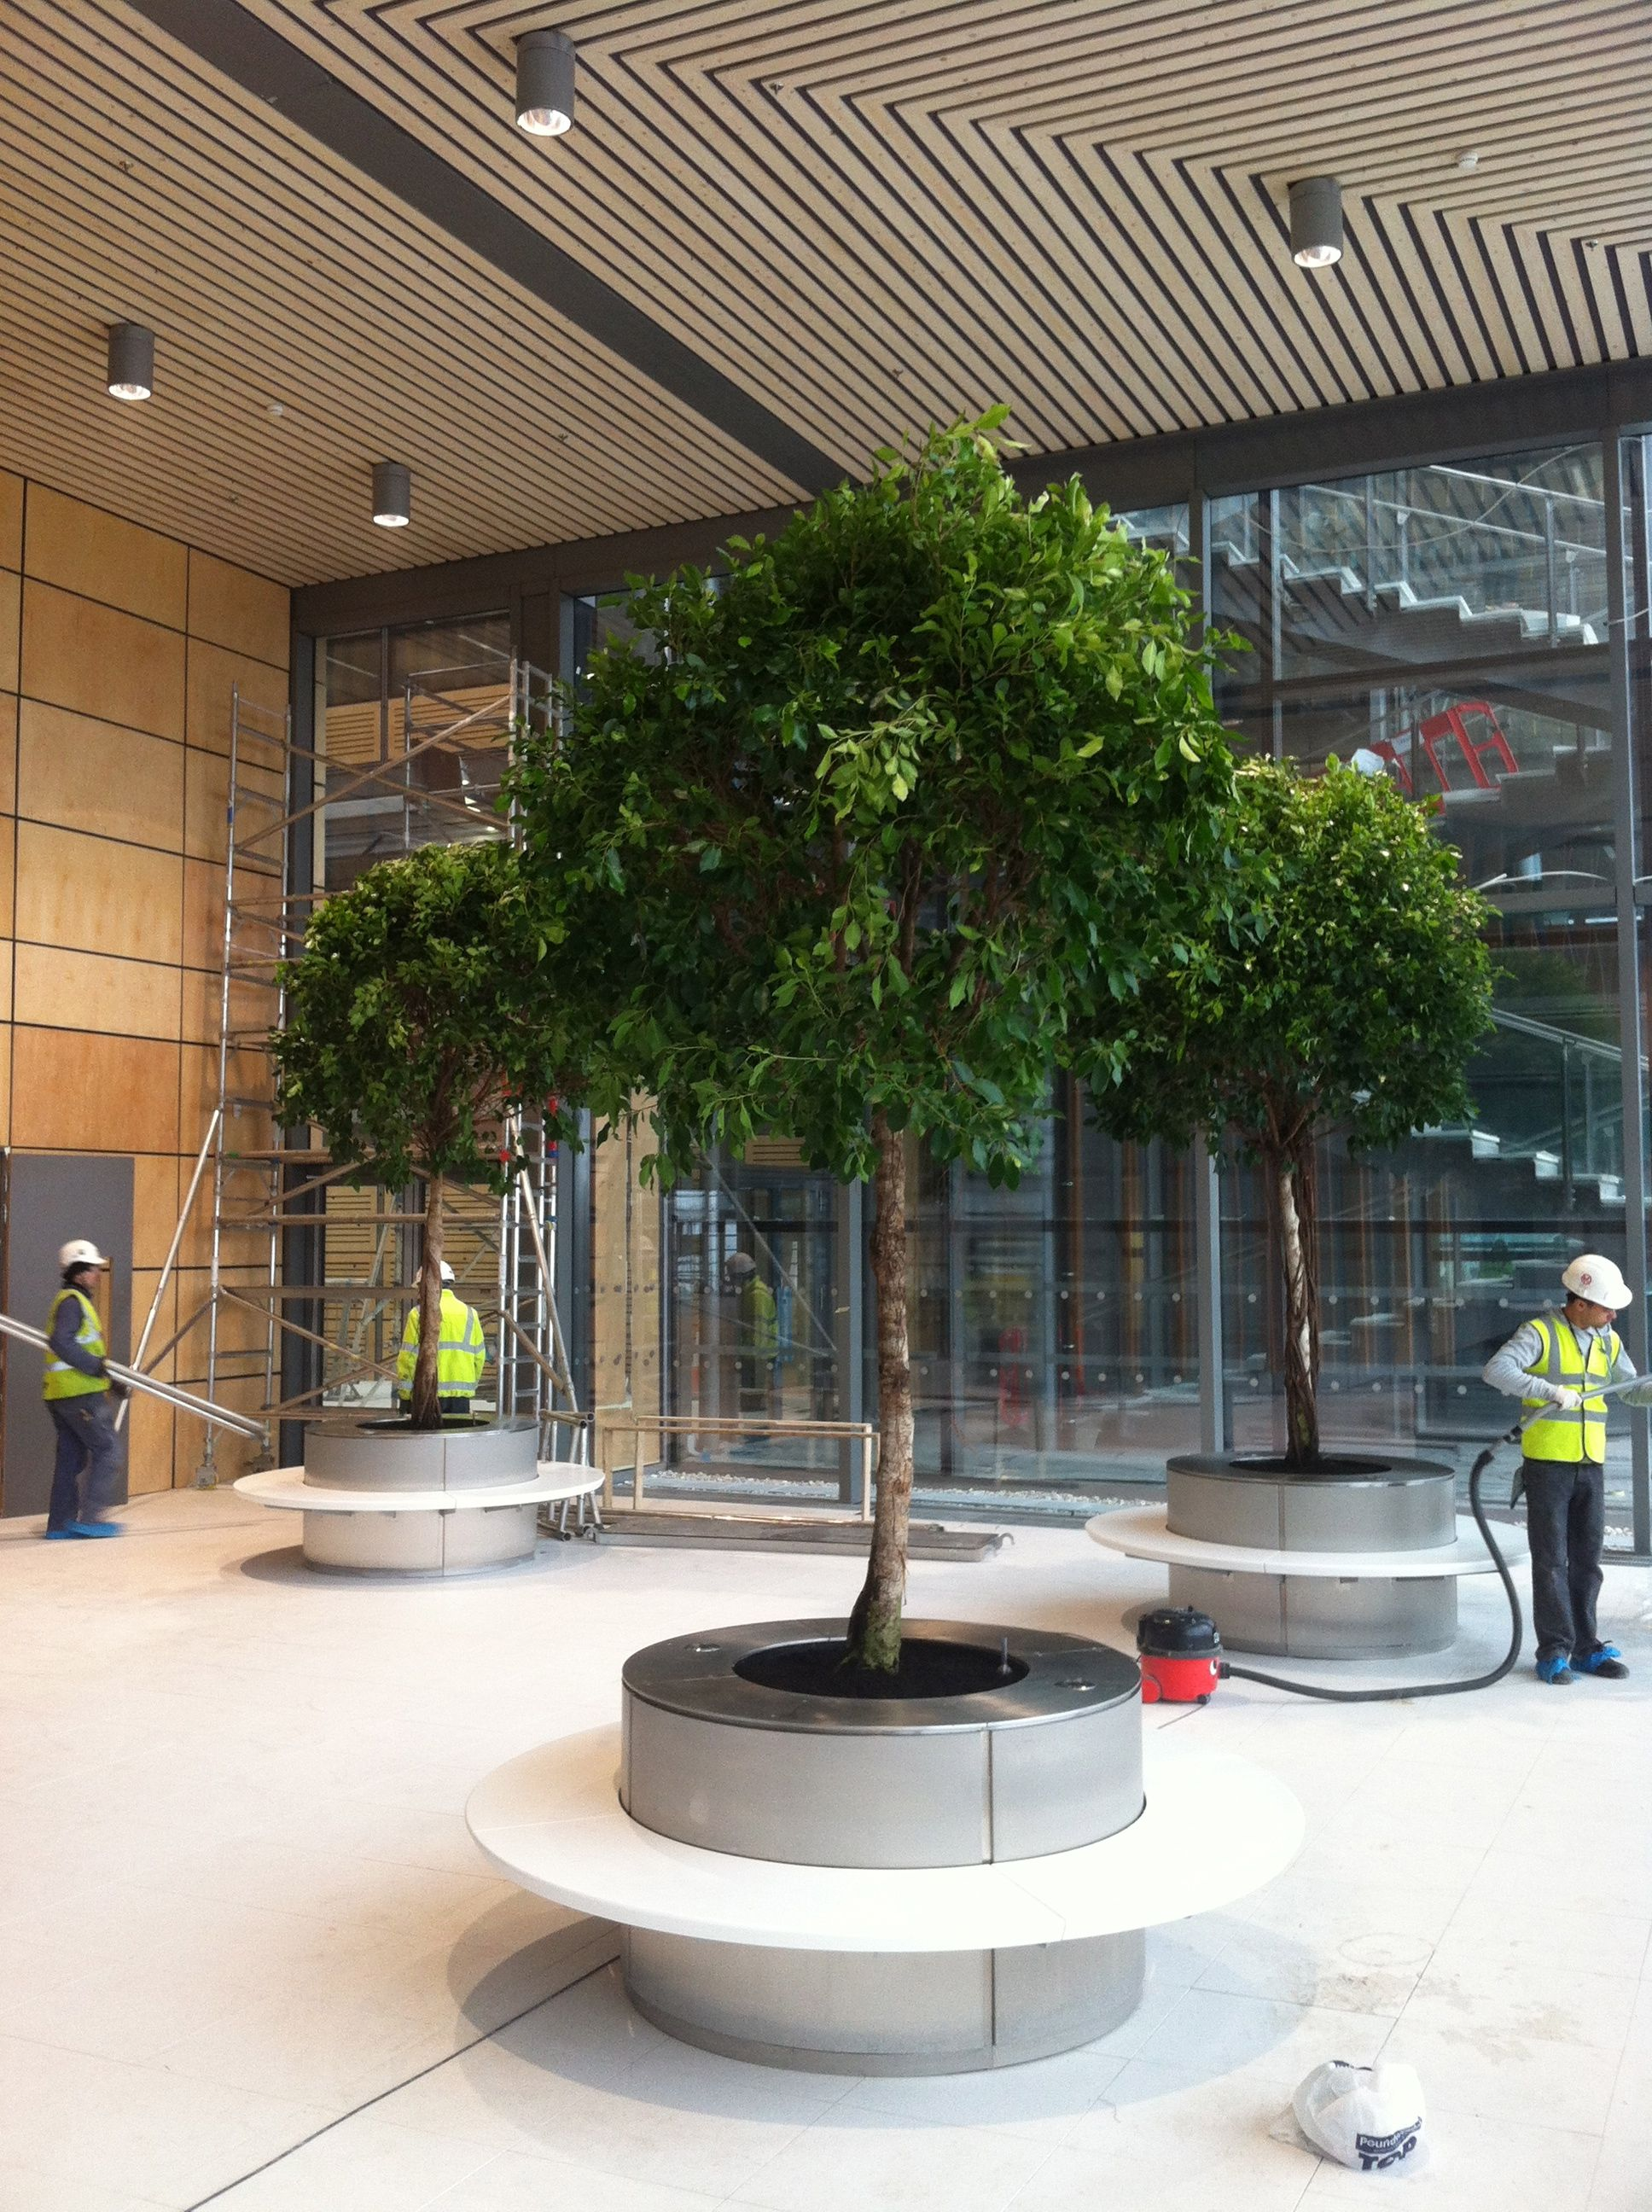 Plant Bench Indoor 4m Ficus Trees Just Planted Into Circular Stainless Steel